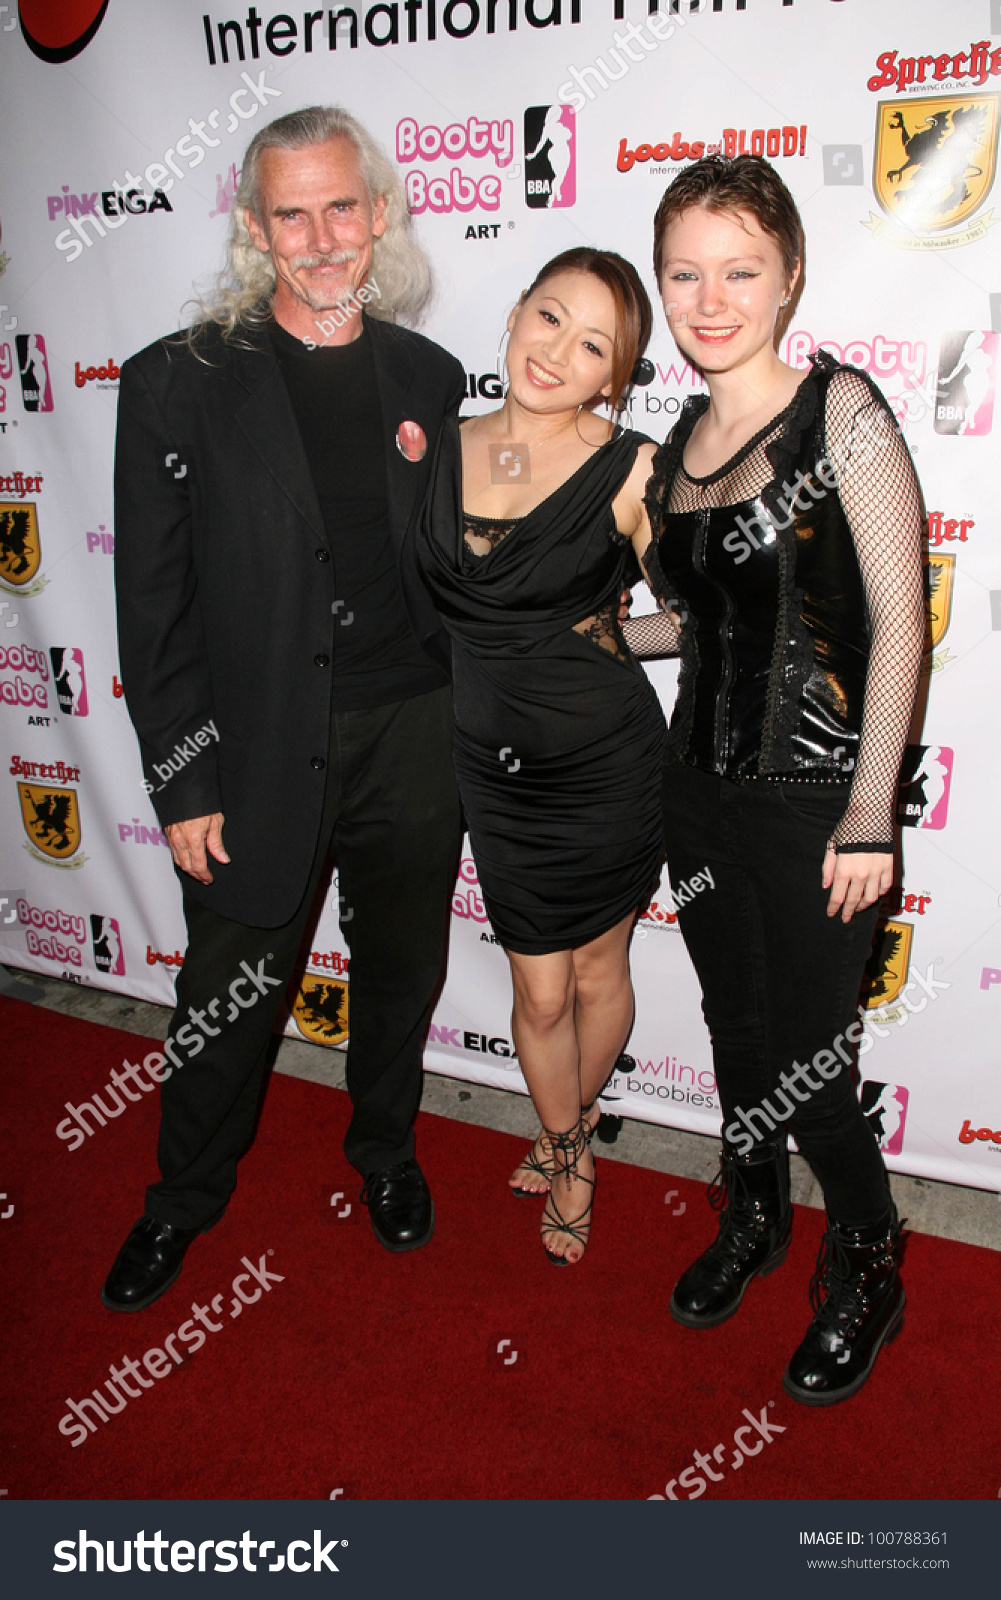 Photos and Pictures - Canden Toy, Reiko Yamaguchi and